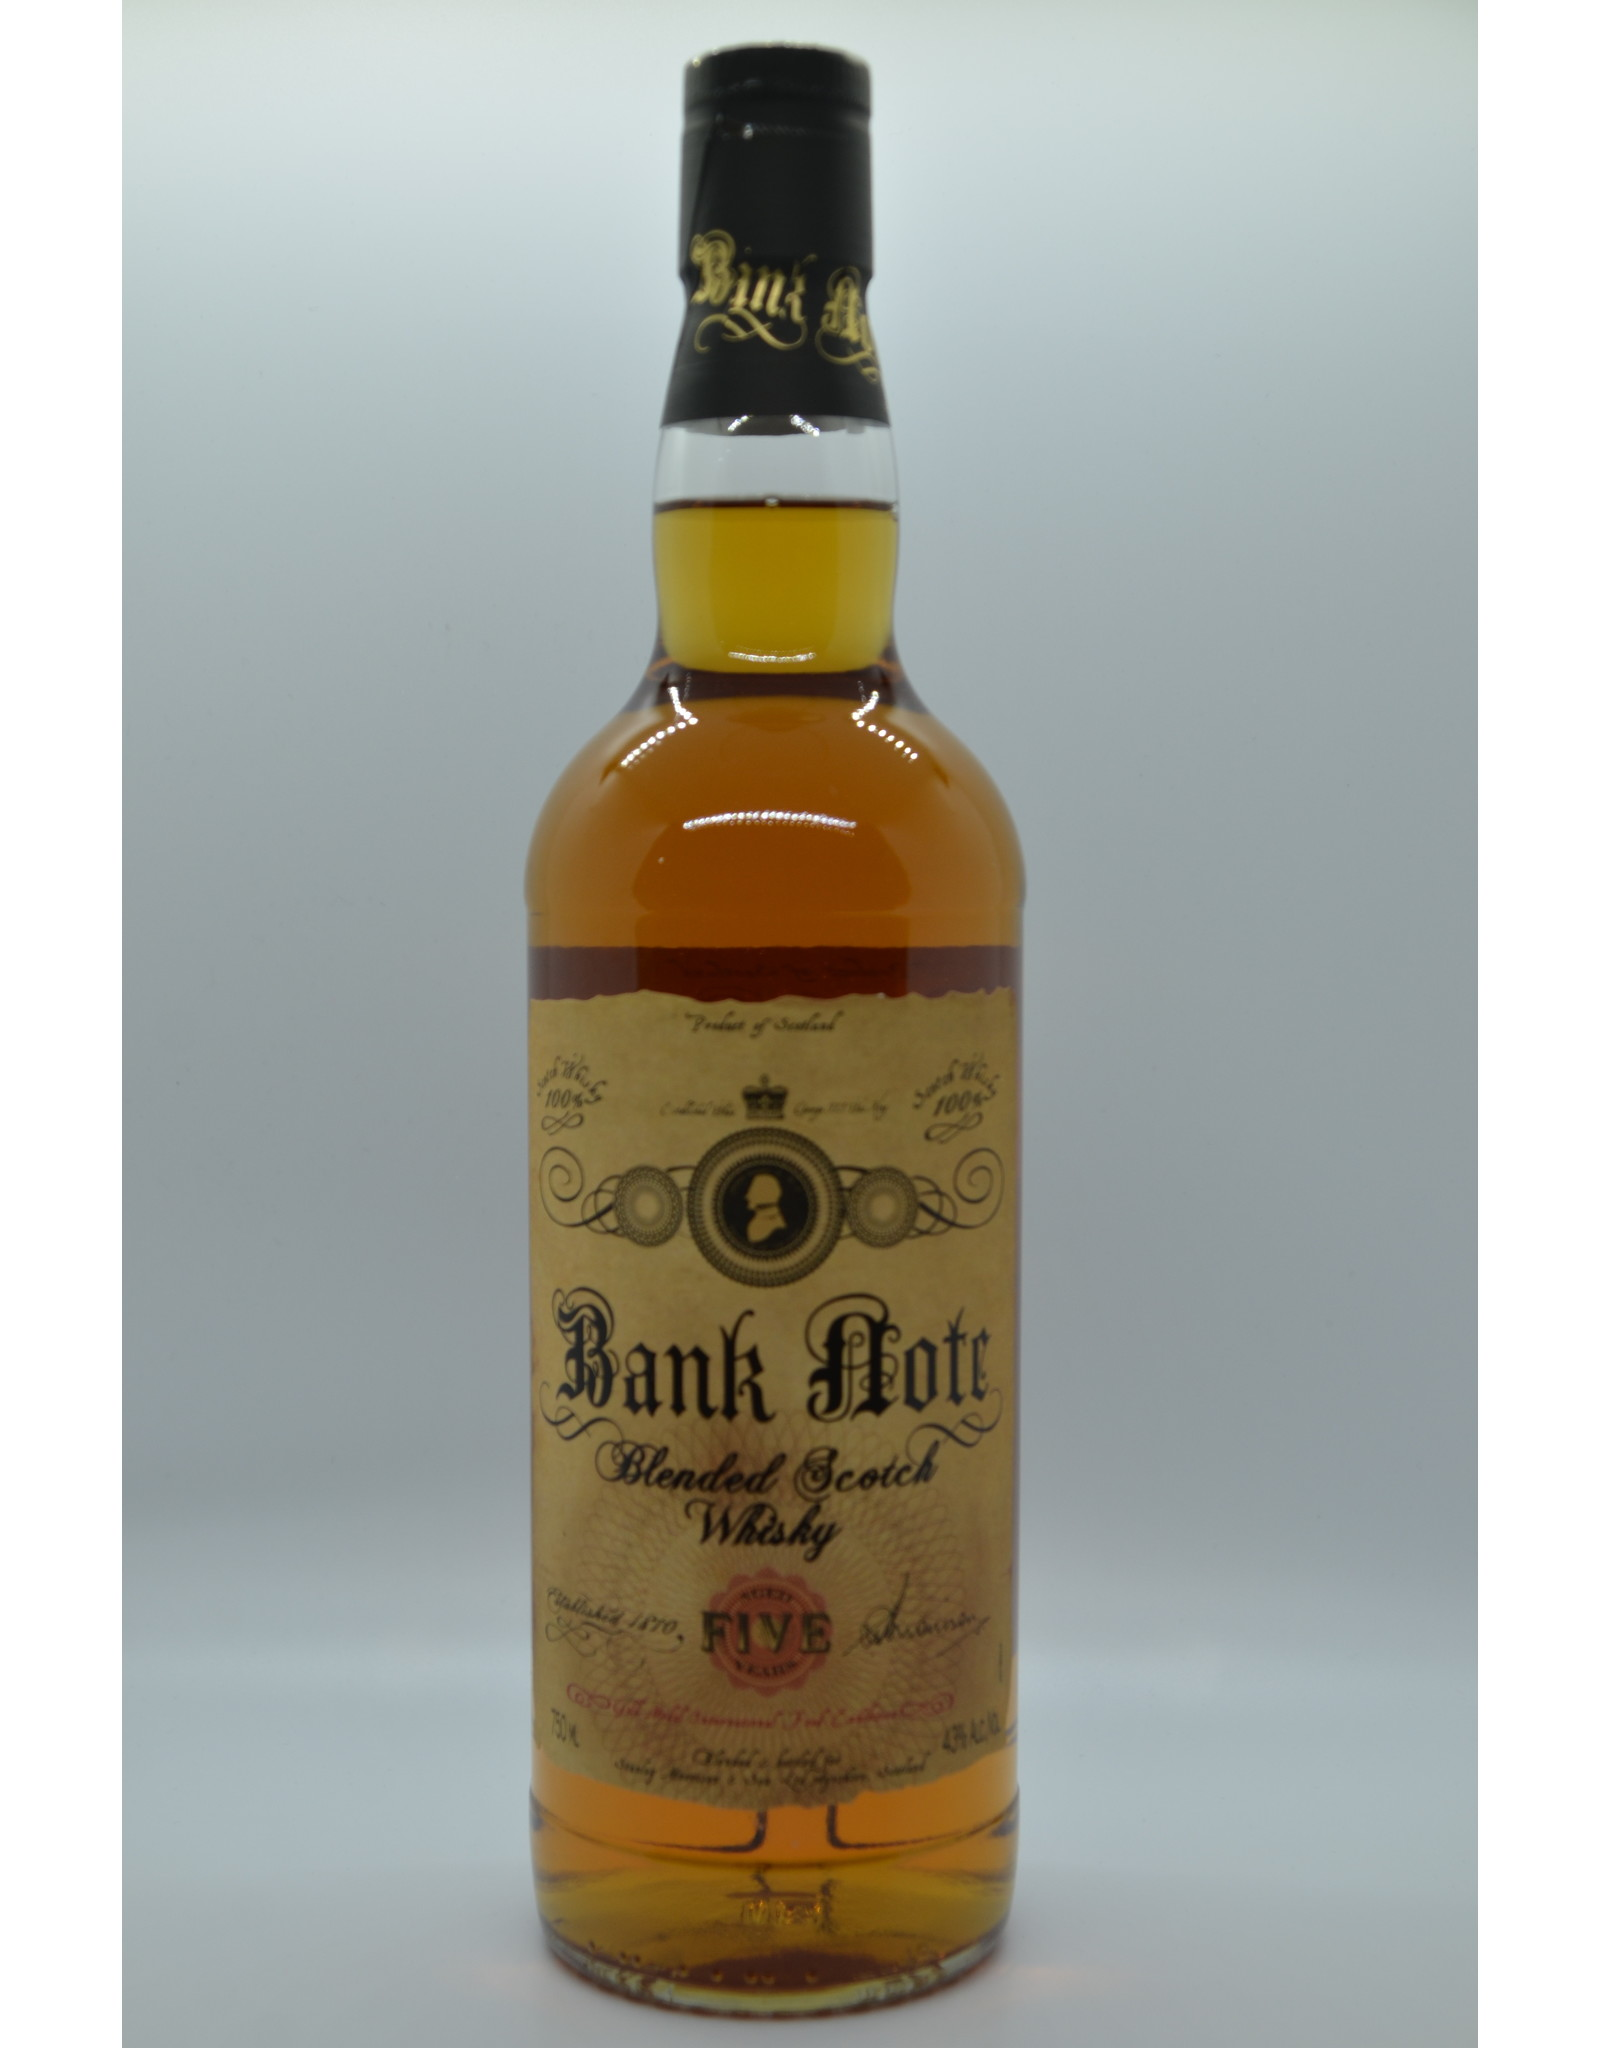 Scotland Bank Note Blended Scotch Whisky